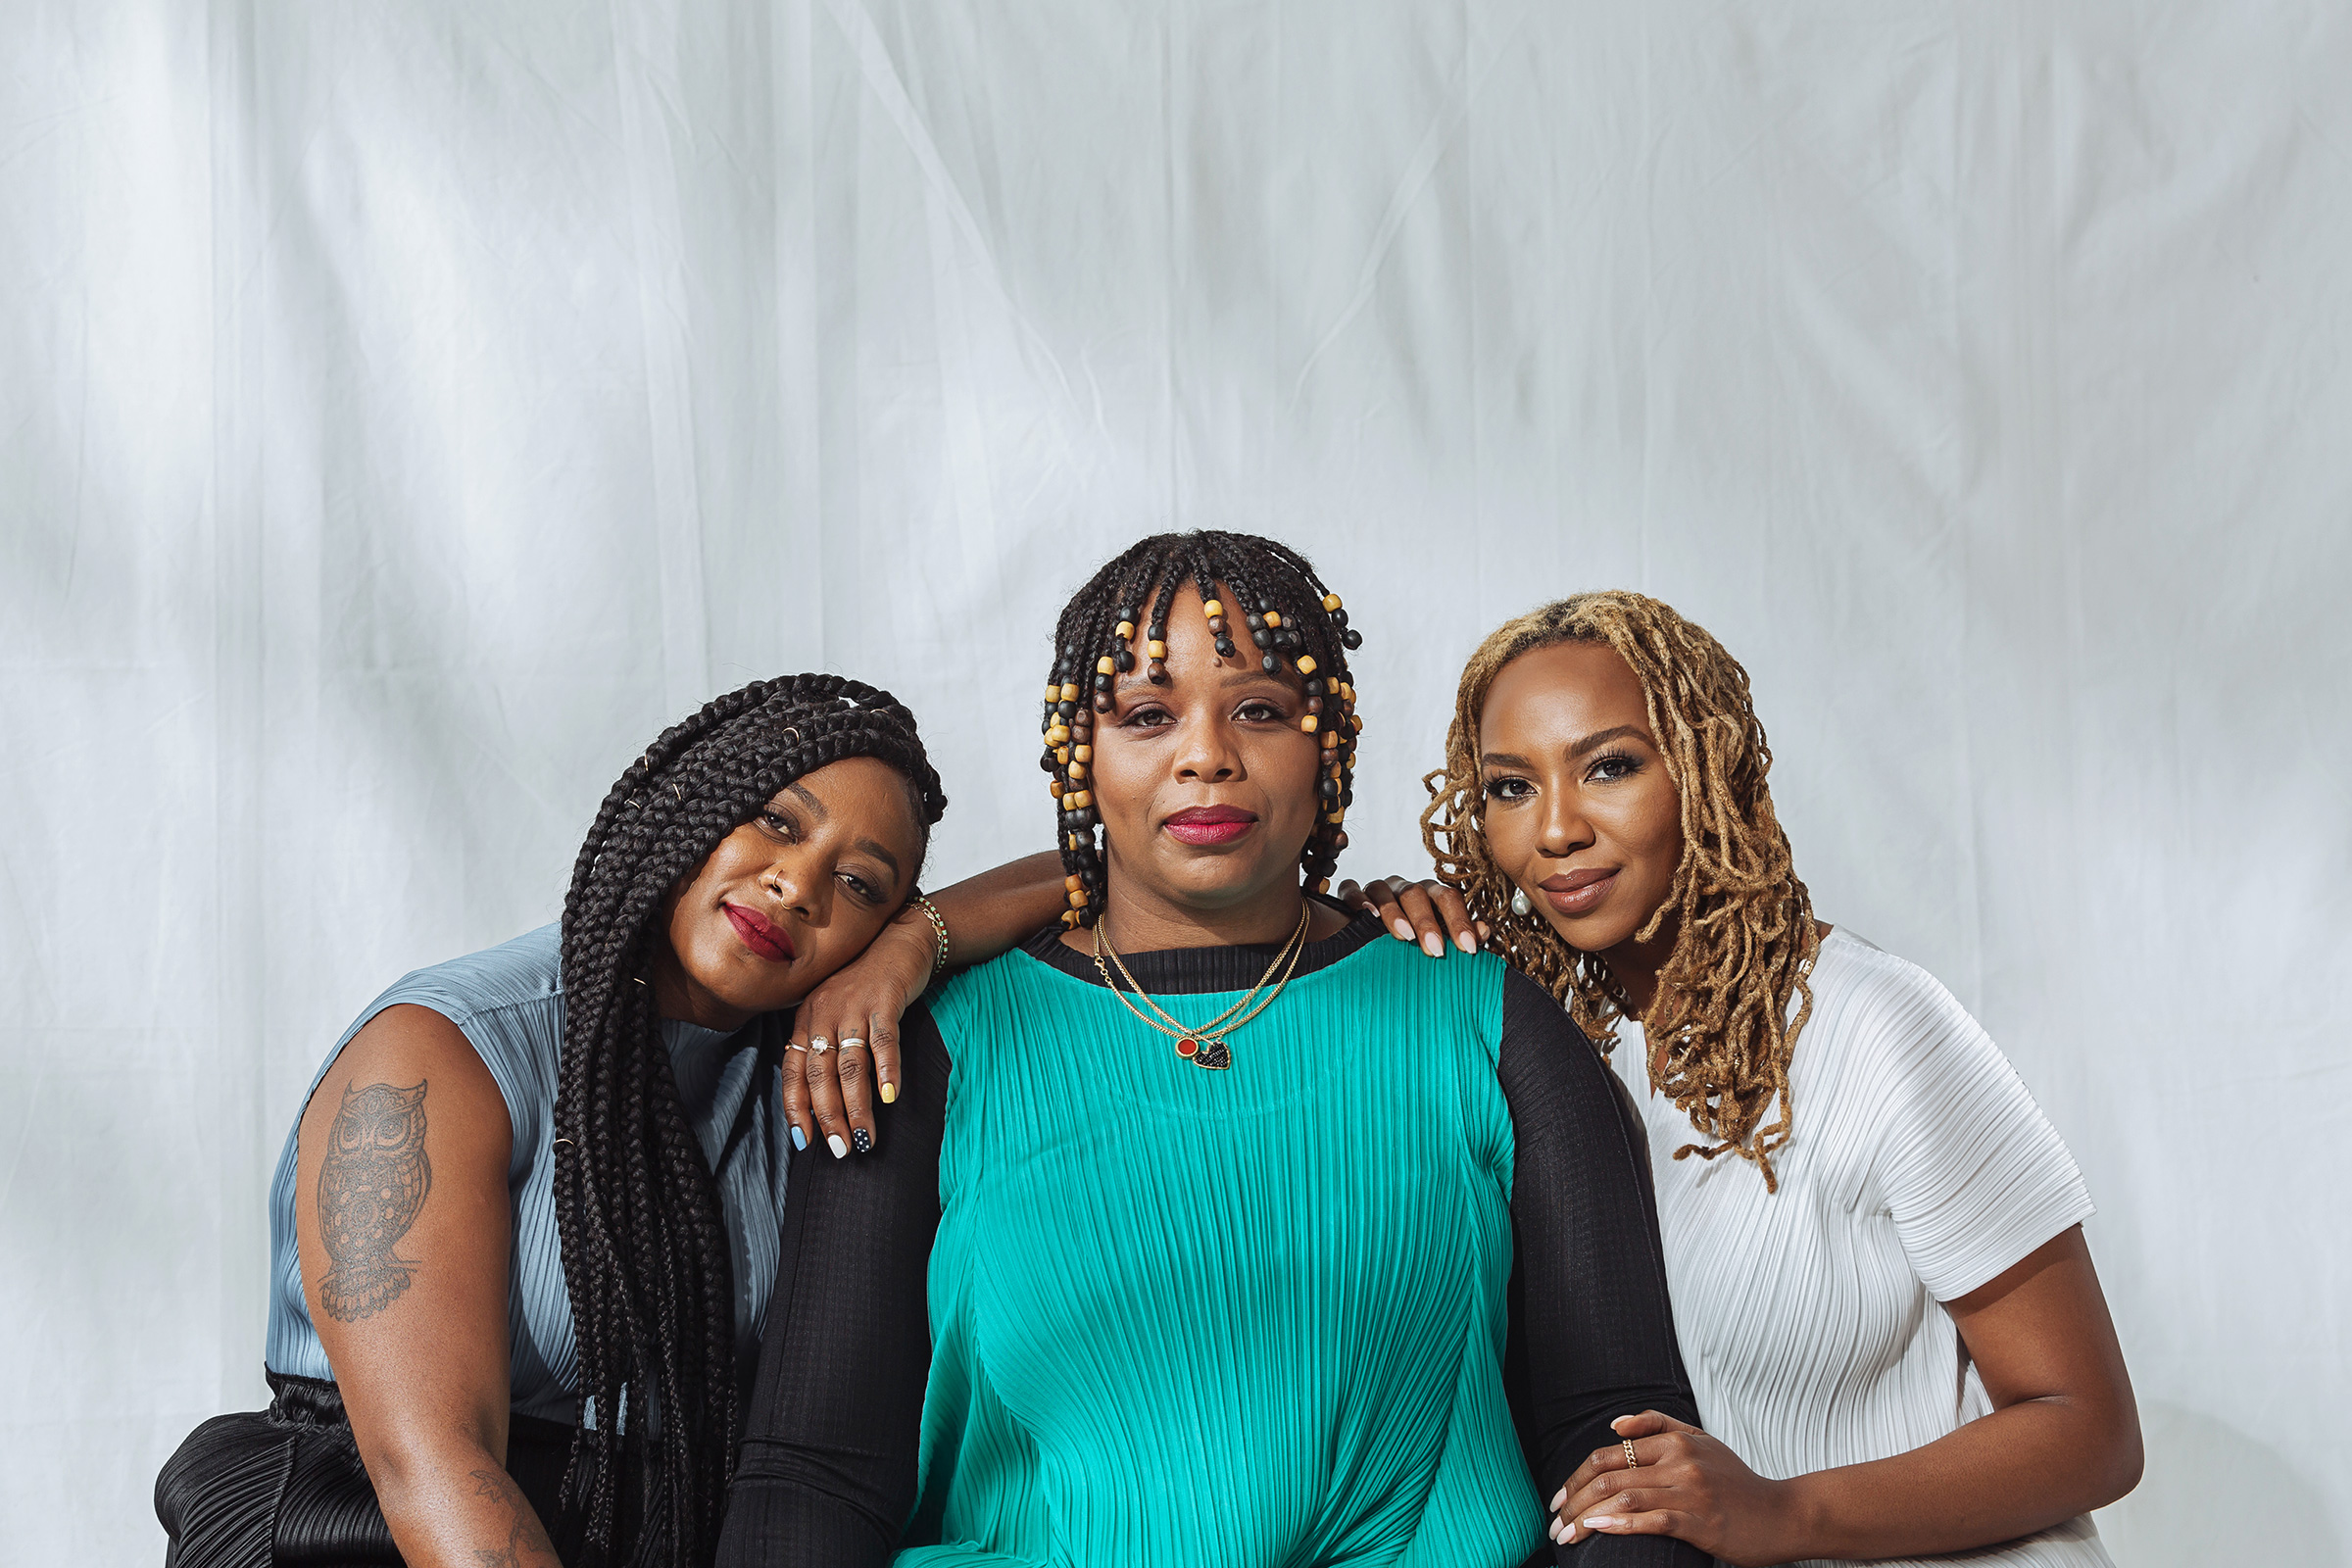 Alicia Garza, Patrisse Cullors and Opal Tometi, founders of Black Lives Matter.  TIME 100 Most Influential People,  Oct. 5 issue.